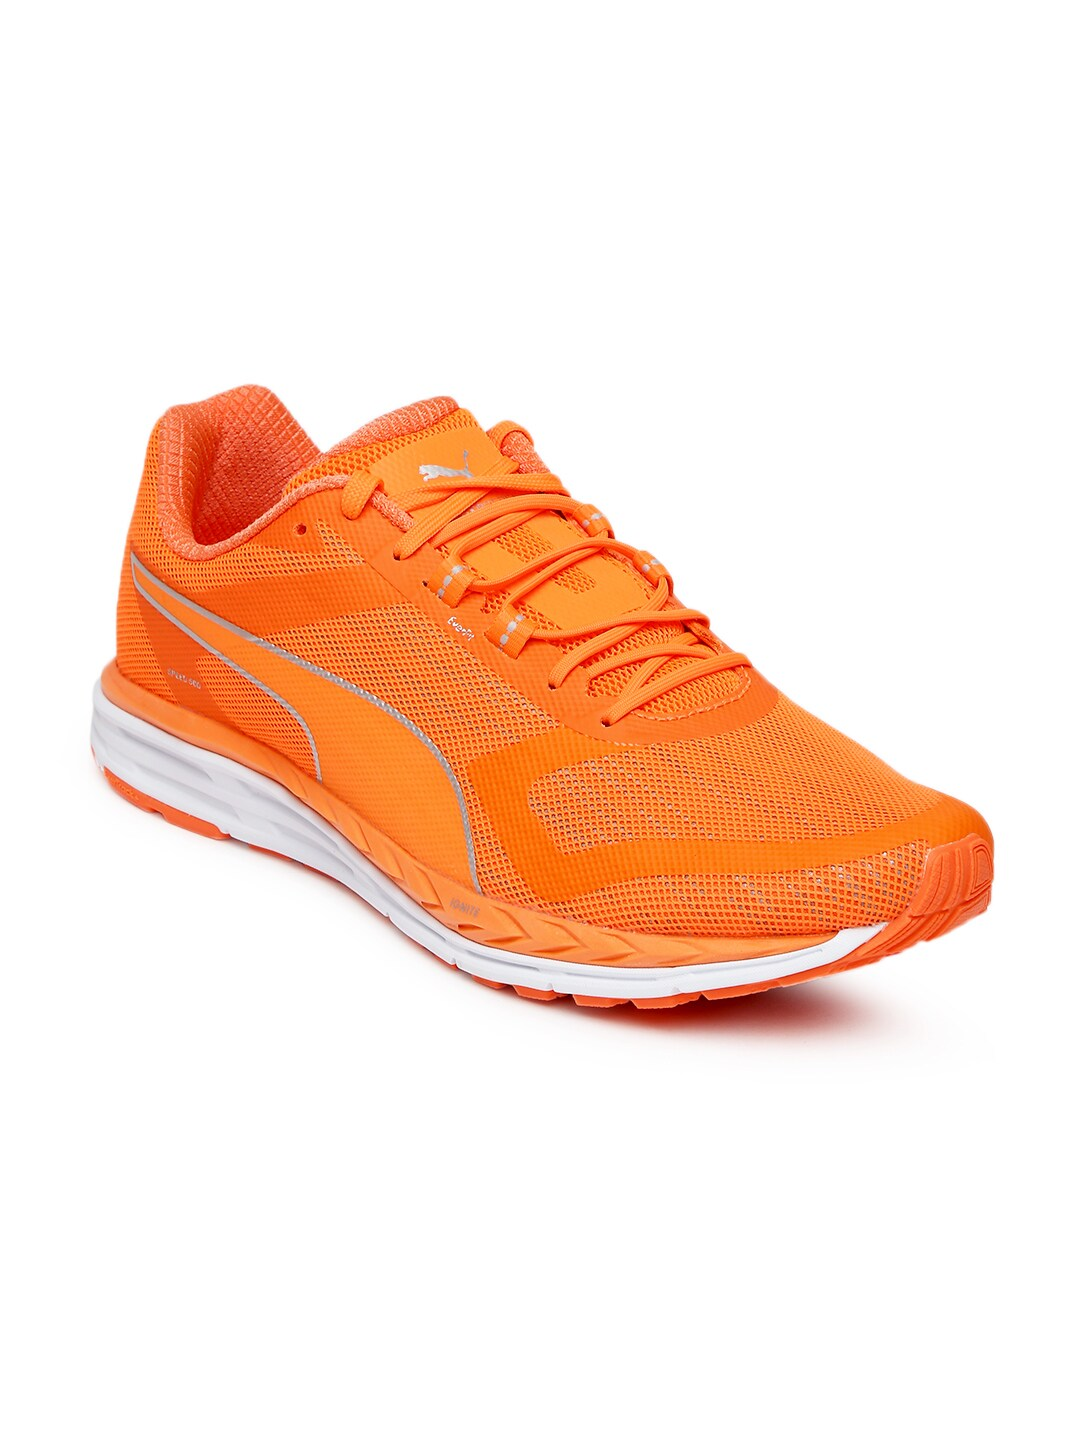 Neon Shoes - Buy Neon Shoes online in India bfcdbbfde